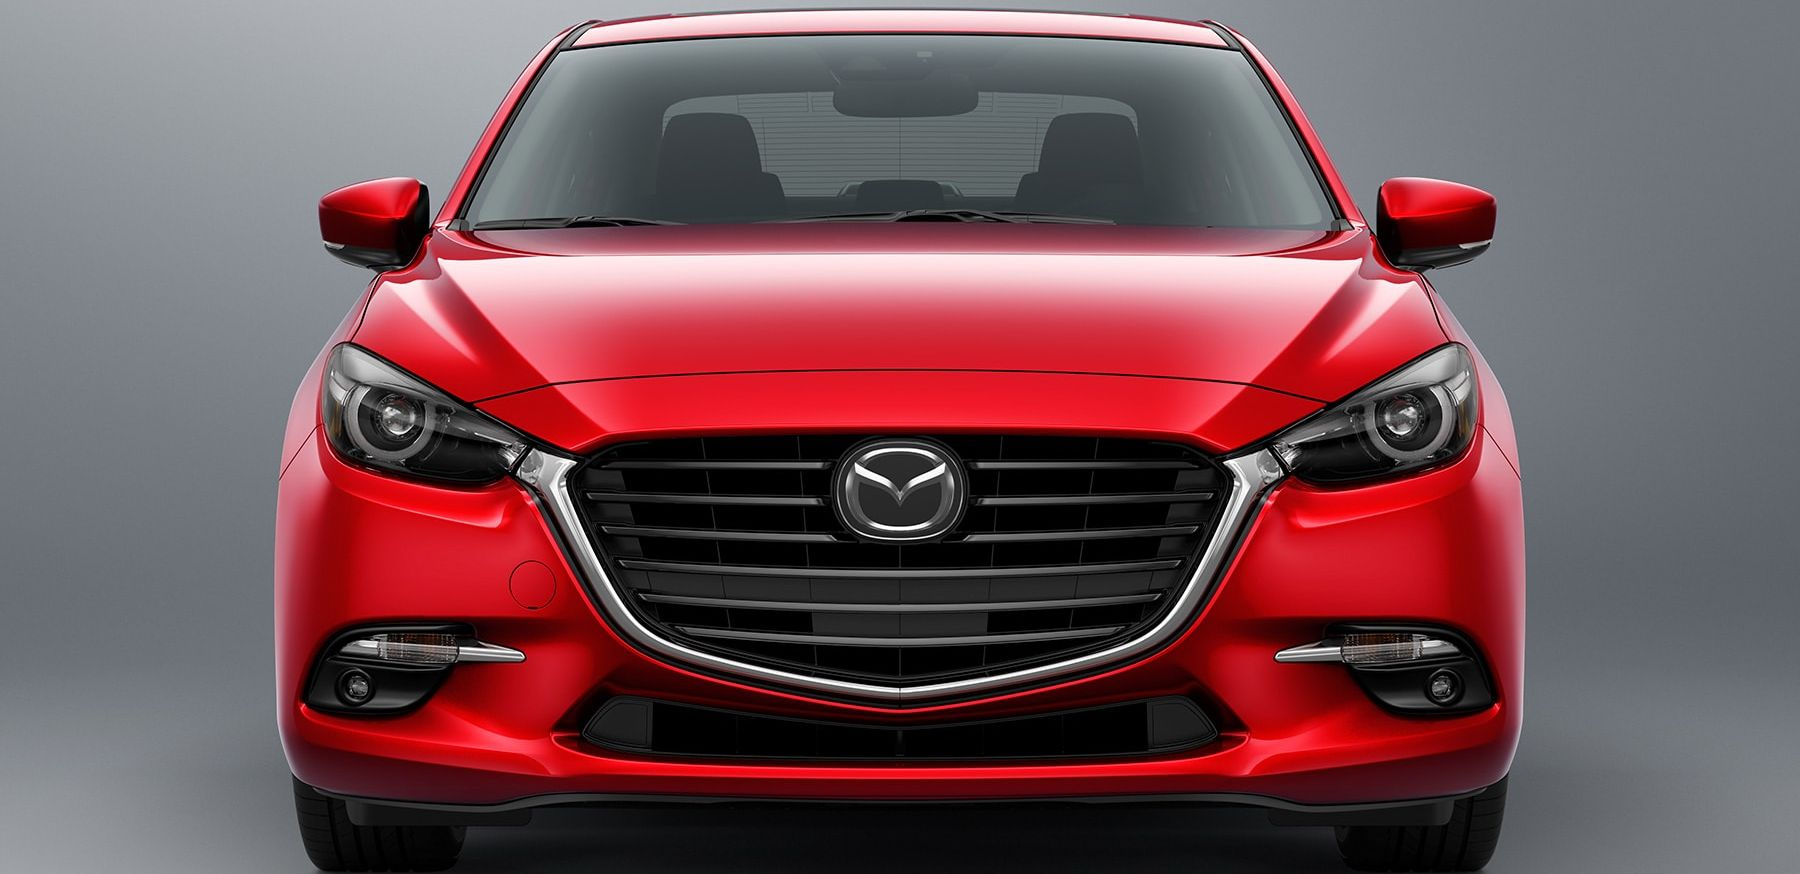 Mazda 3 Owners Manual: Overhead Lights